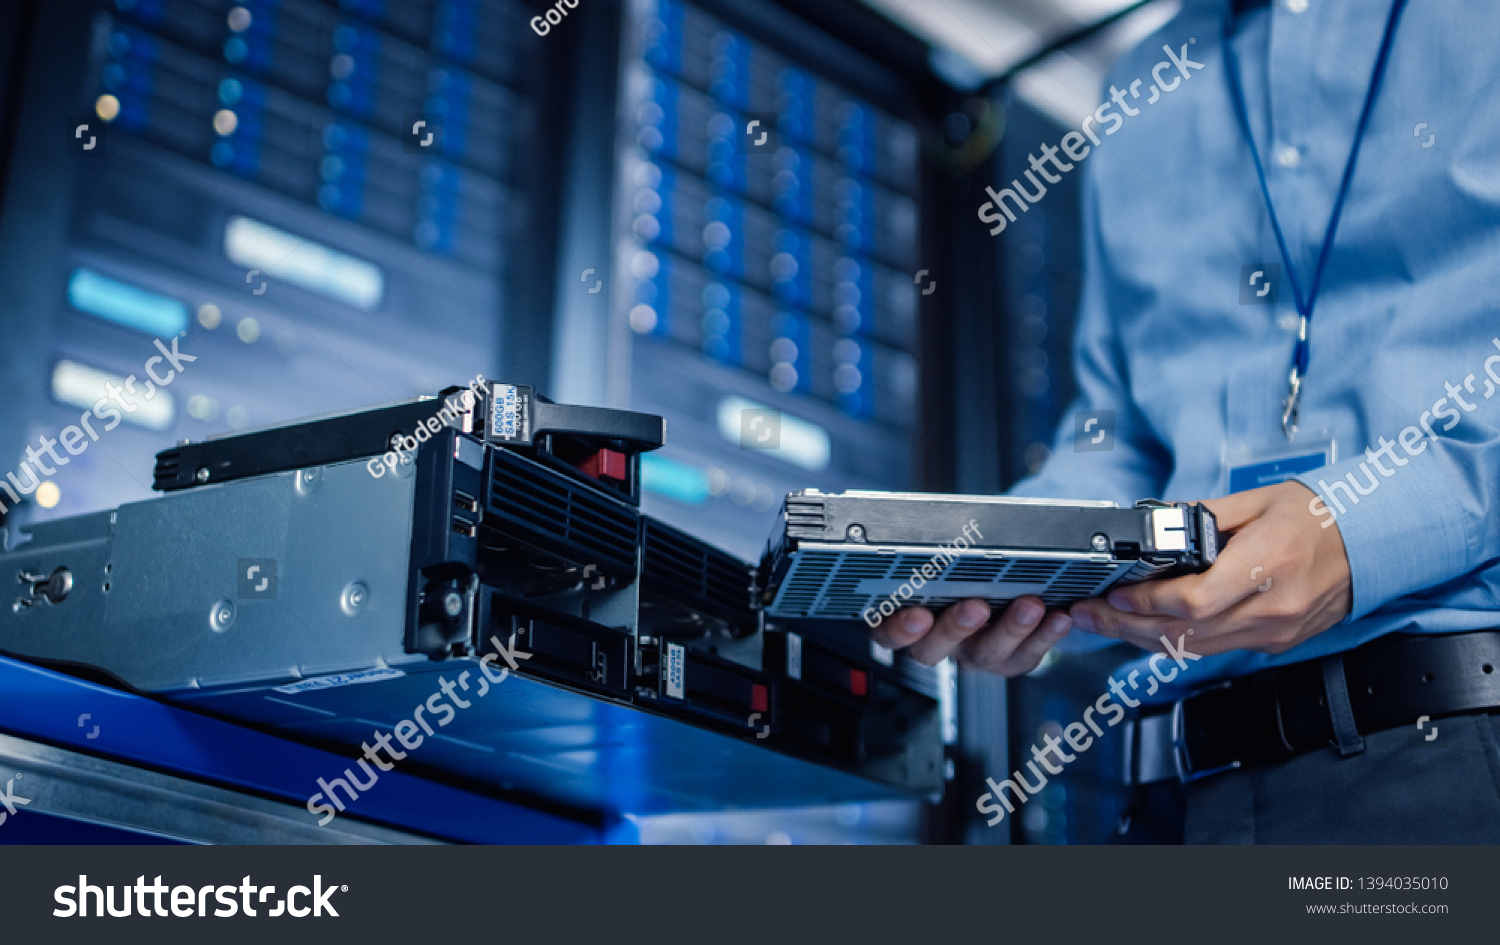 In the Modern Data Center: IT Engineer is Holding New HDD Hard Drive Prepared for Installing Hardware Equipment into Server Rack. IT Specialist Doing Maintenance and Updating Hardware. #1394035010